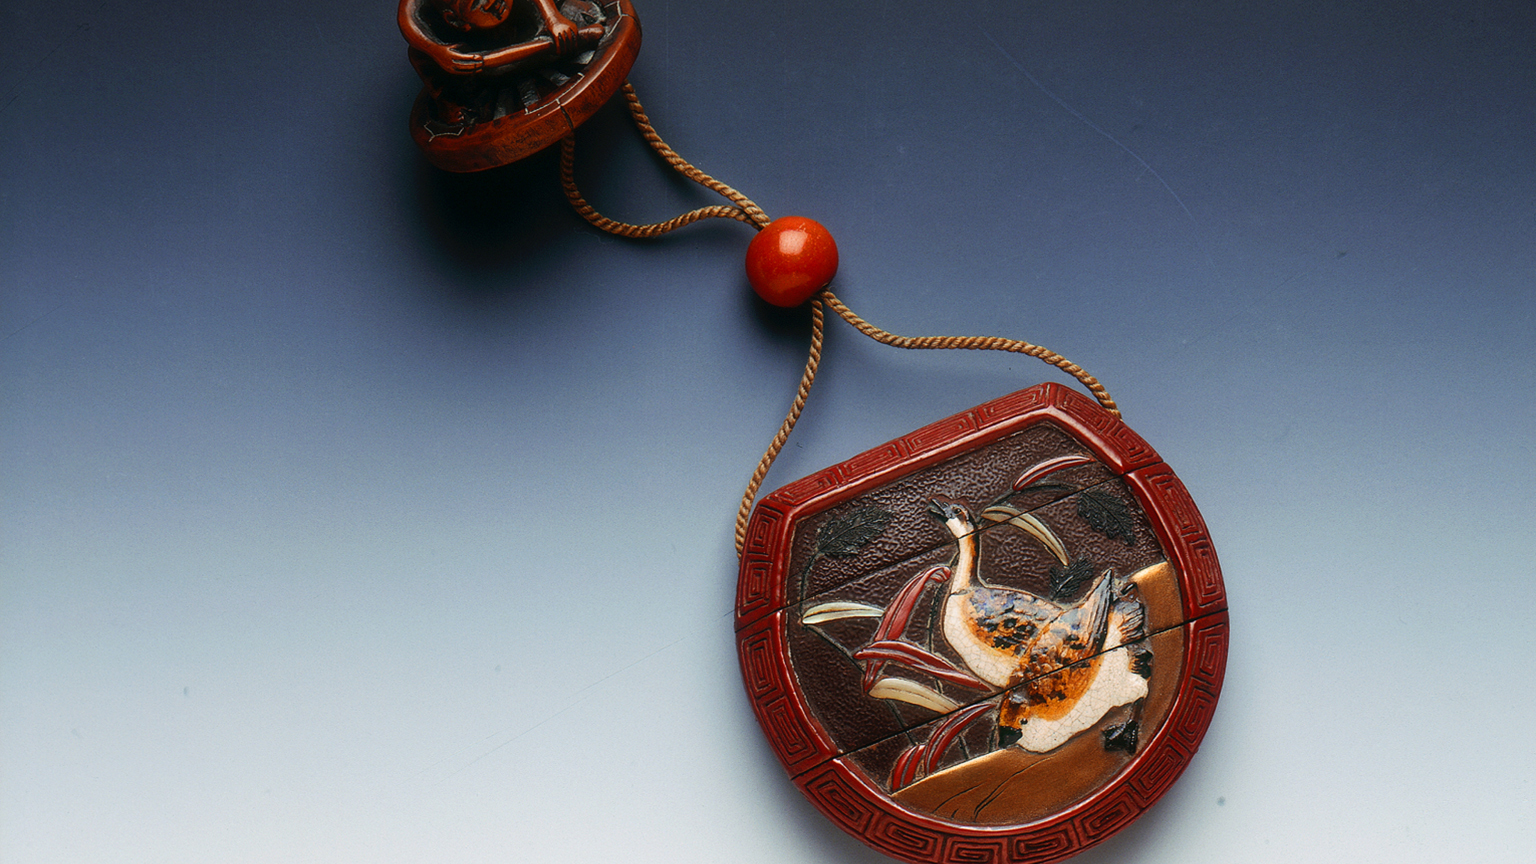 Lacquer inro with Daruma and geese in style of Ritsuo and ojime and wood netsuke of a wheelwright, signed 'Hokei'Japan, 18th century